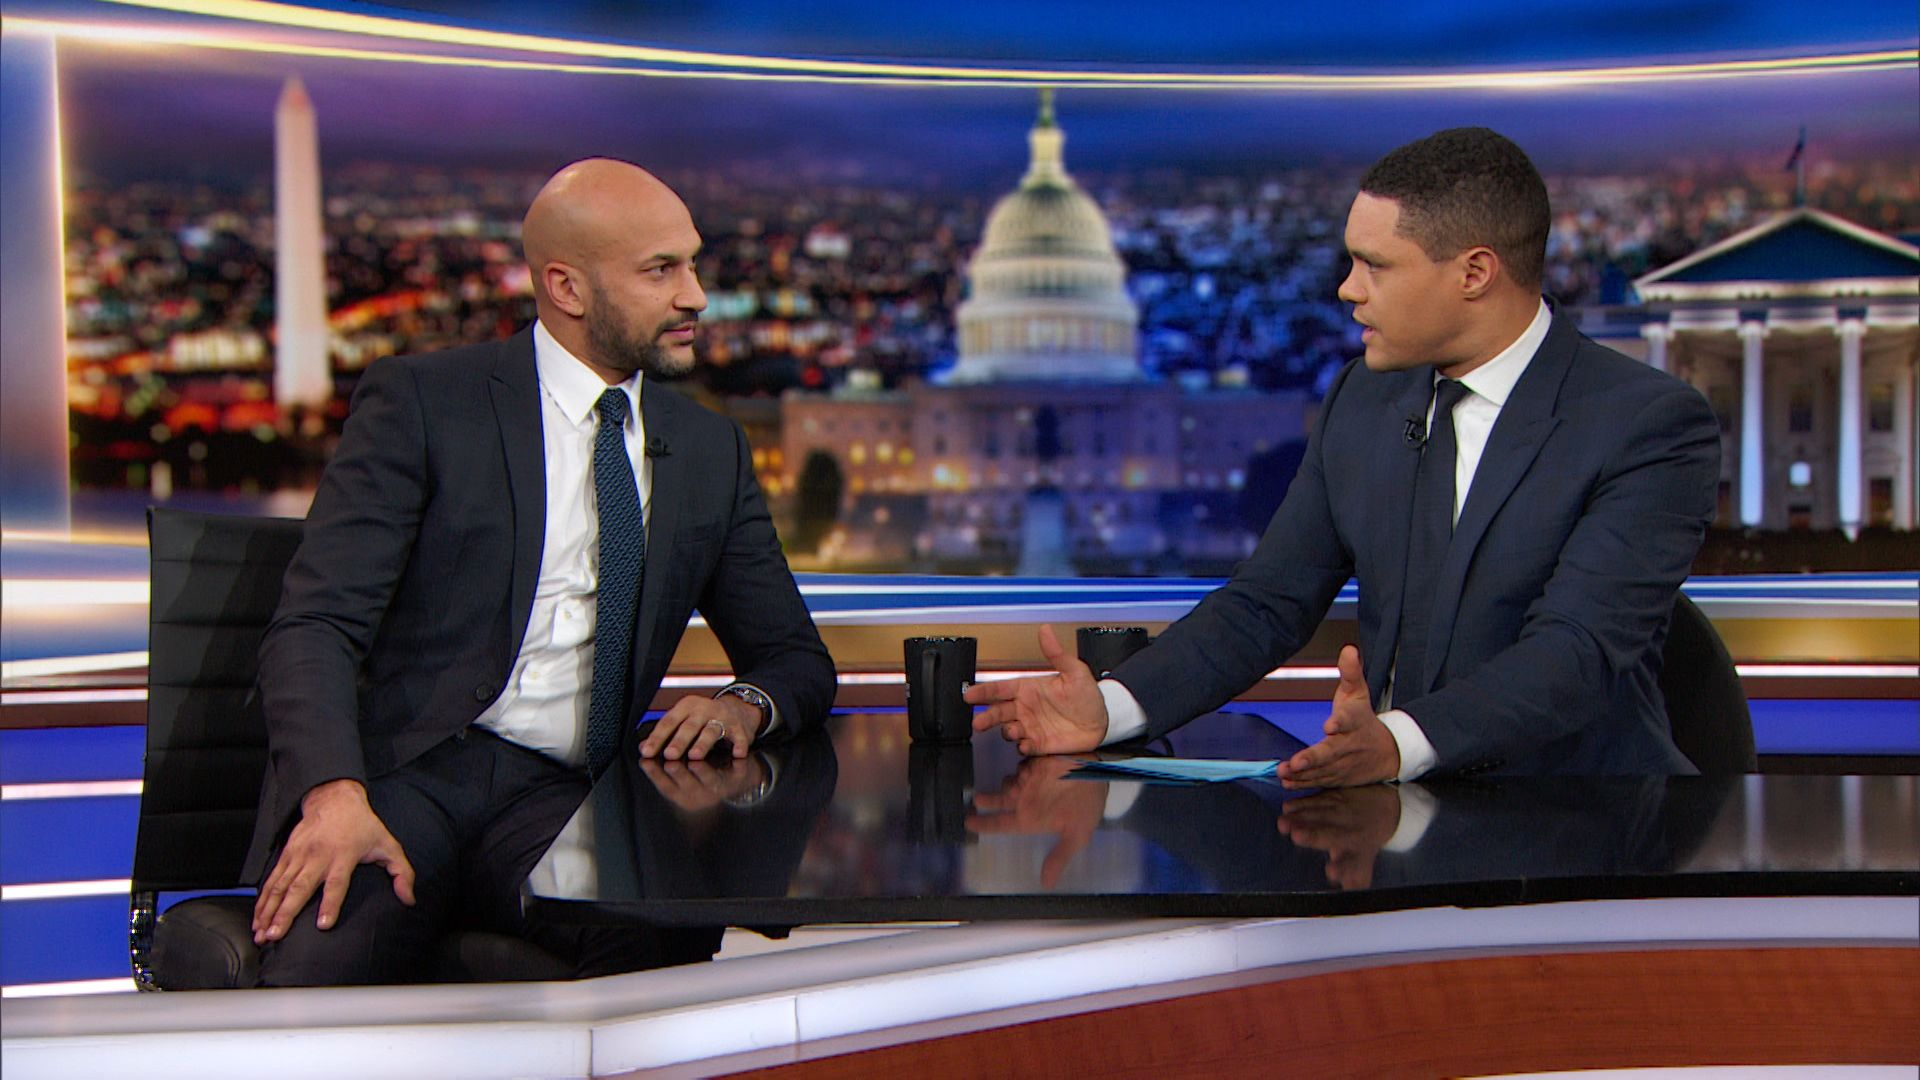 Keegan Michael Key Friends From College Shakespeare The Images, Photos, Reviews